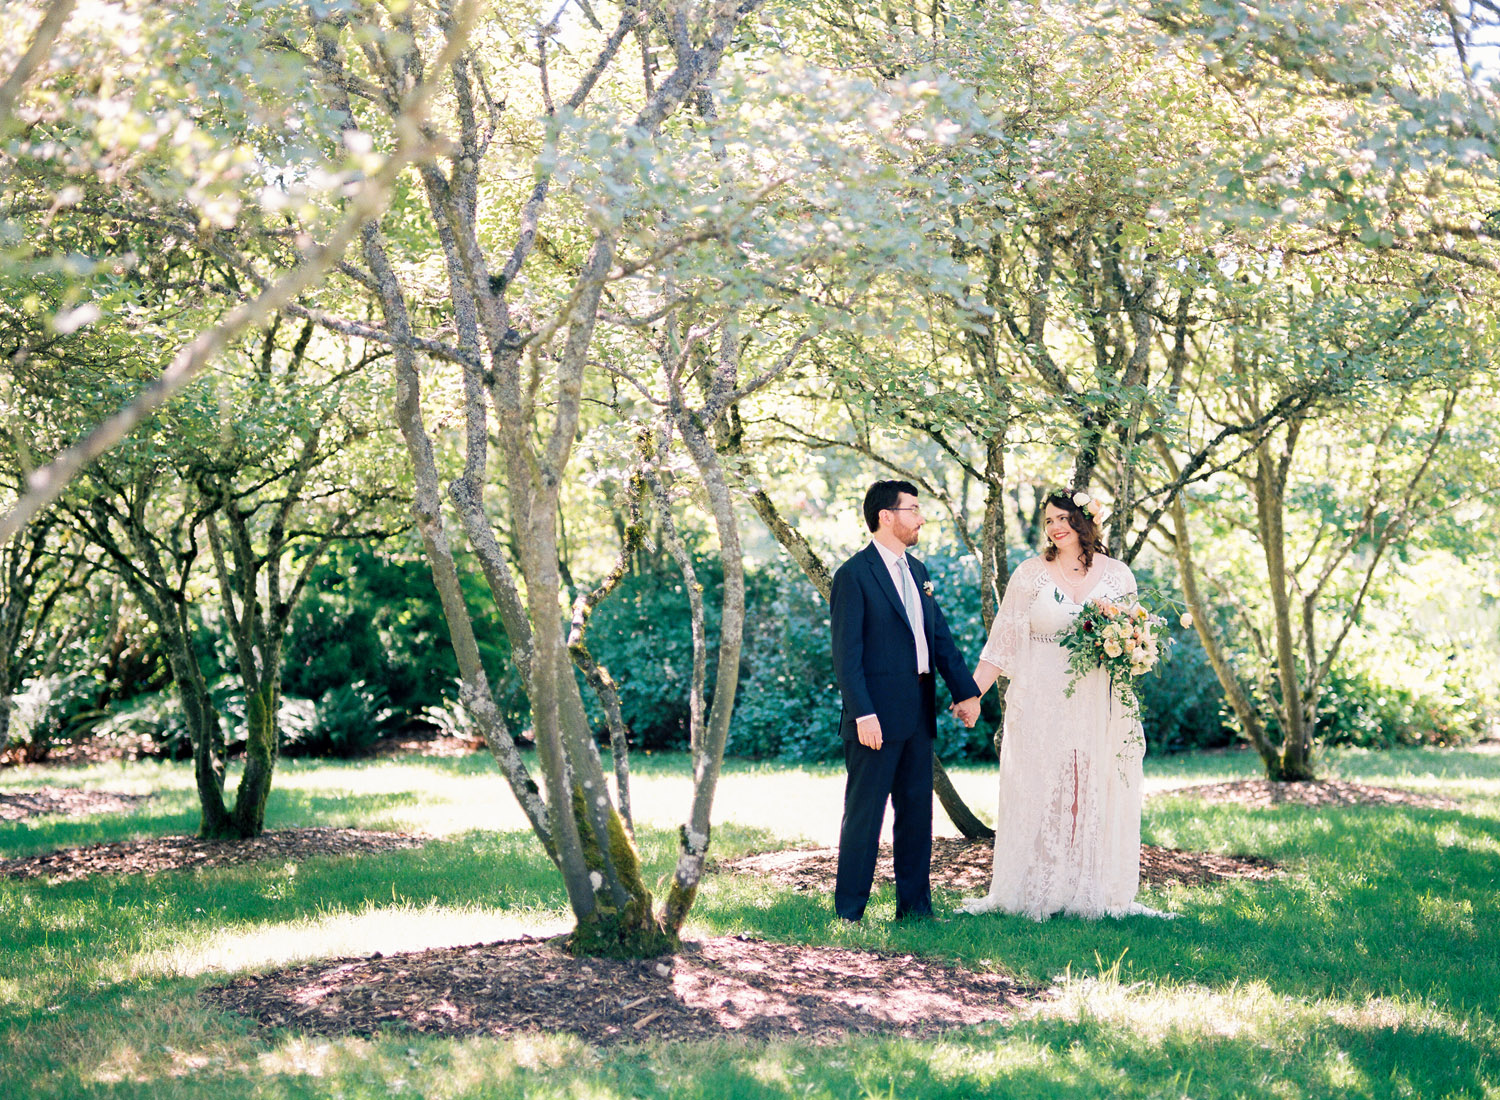 Boho Bride and Groom at the University of Washington Center for Urban Horticulture Summer wedding